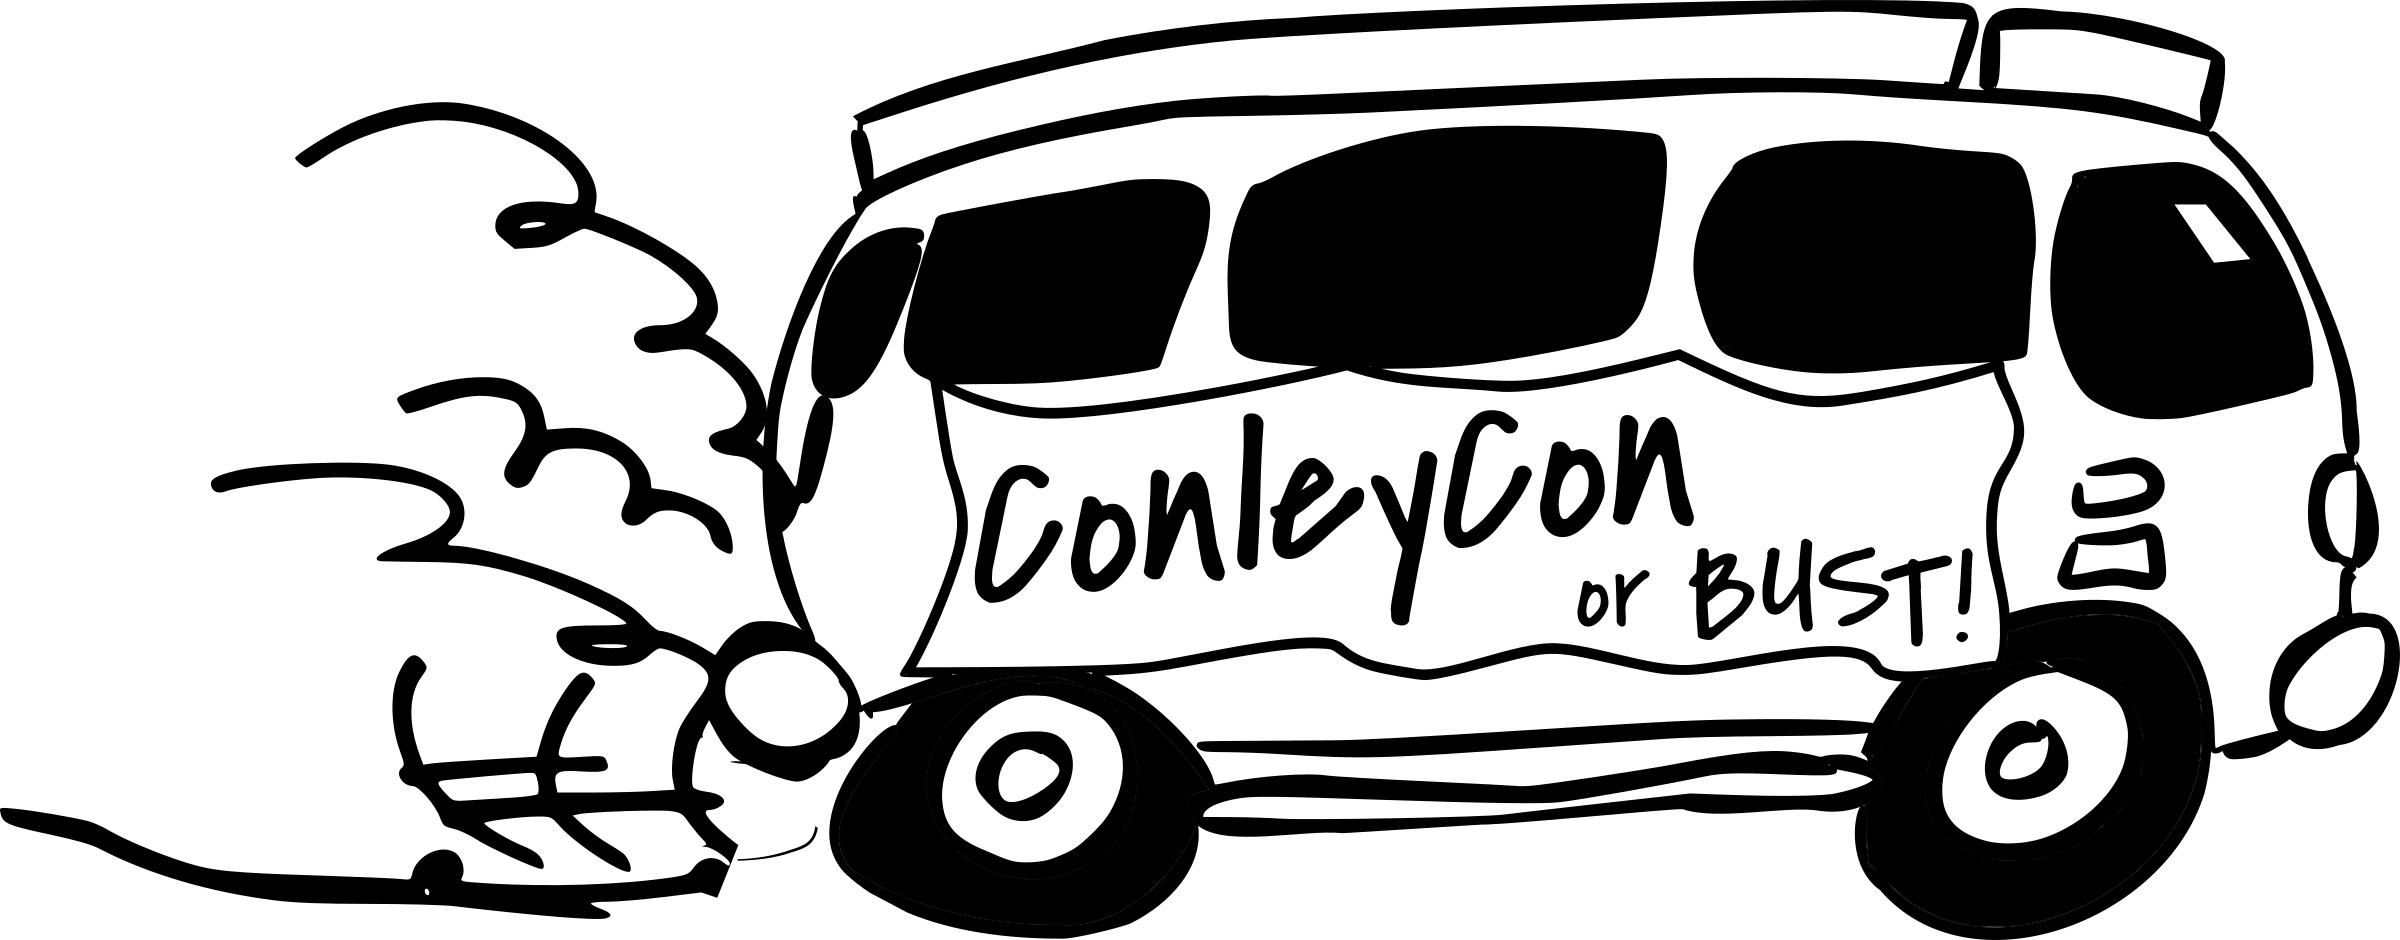 Car detailing clipart black and white svg transparent download Clipart - ConleyCon Van, black and white svg transparent download